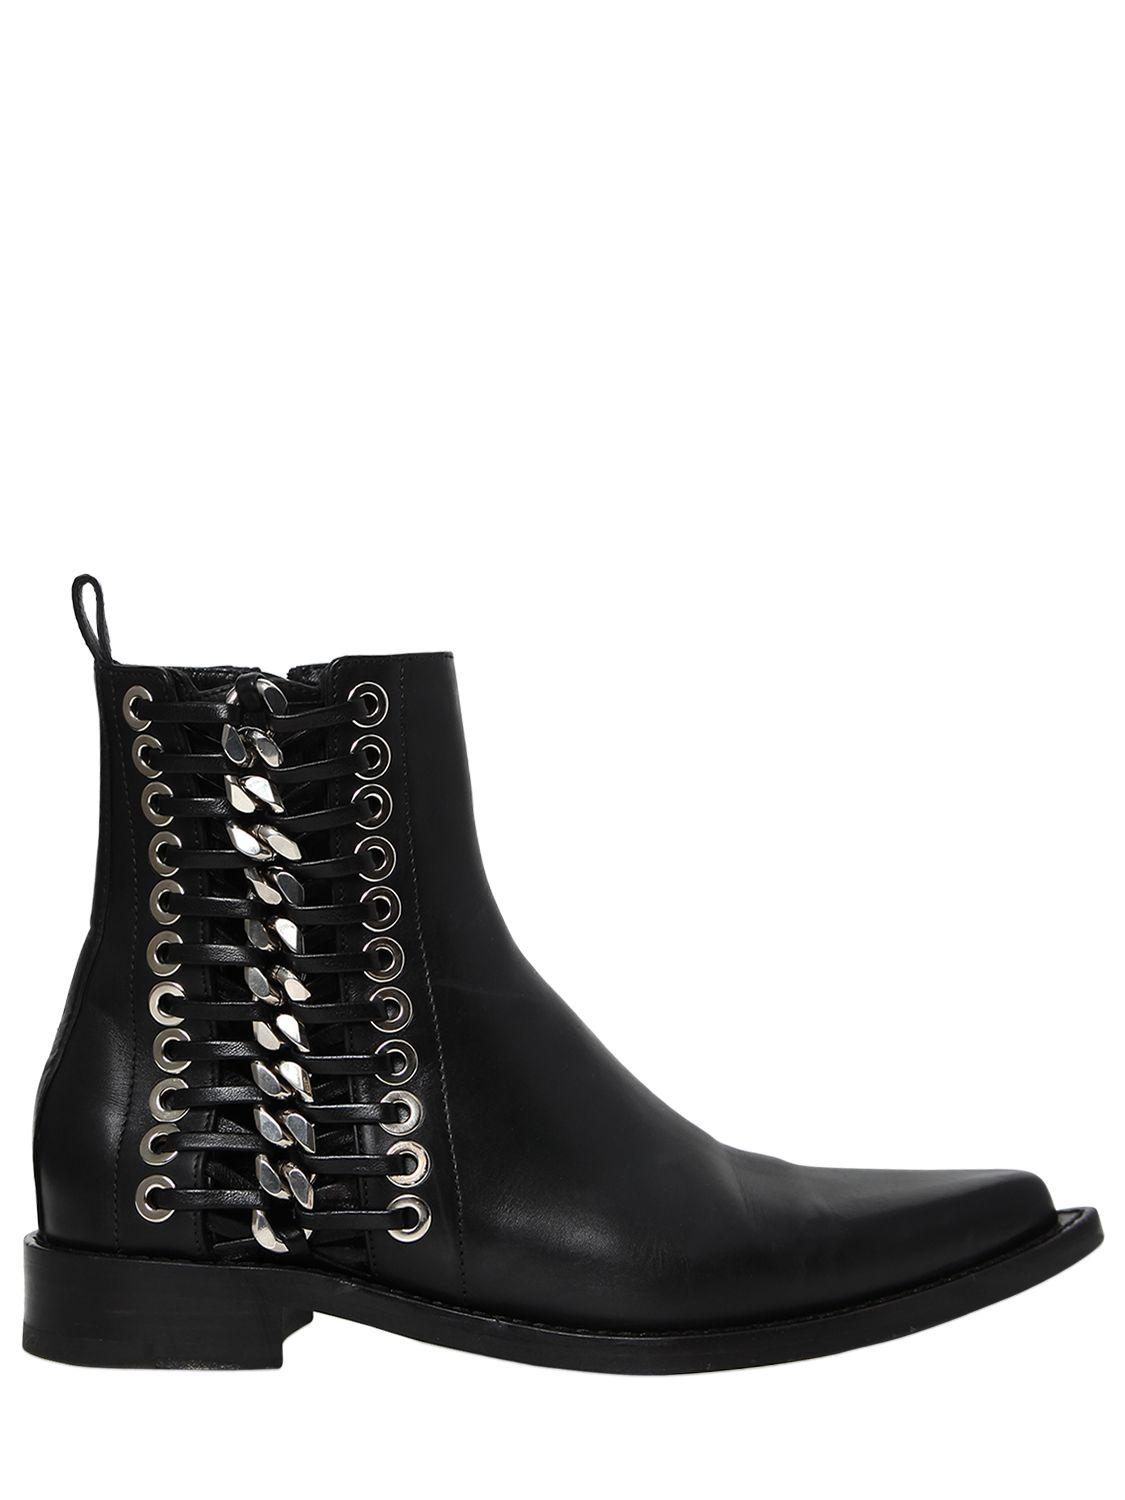 Alexander McQueen. Women's Black 20mm Braided Chain Leather Boots